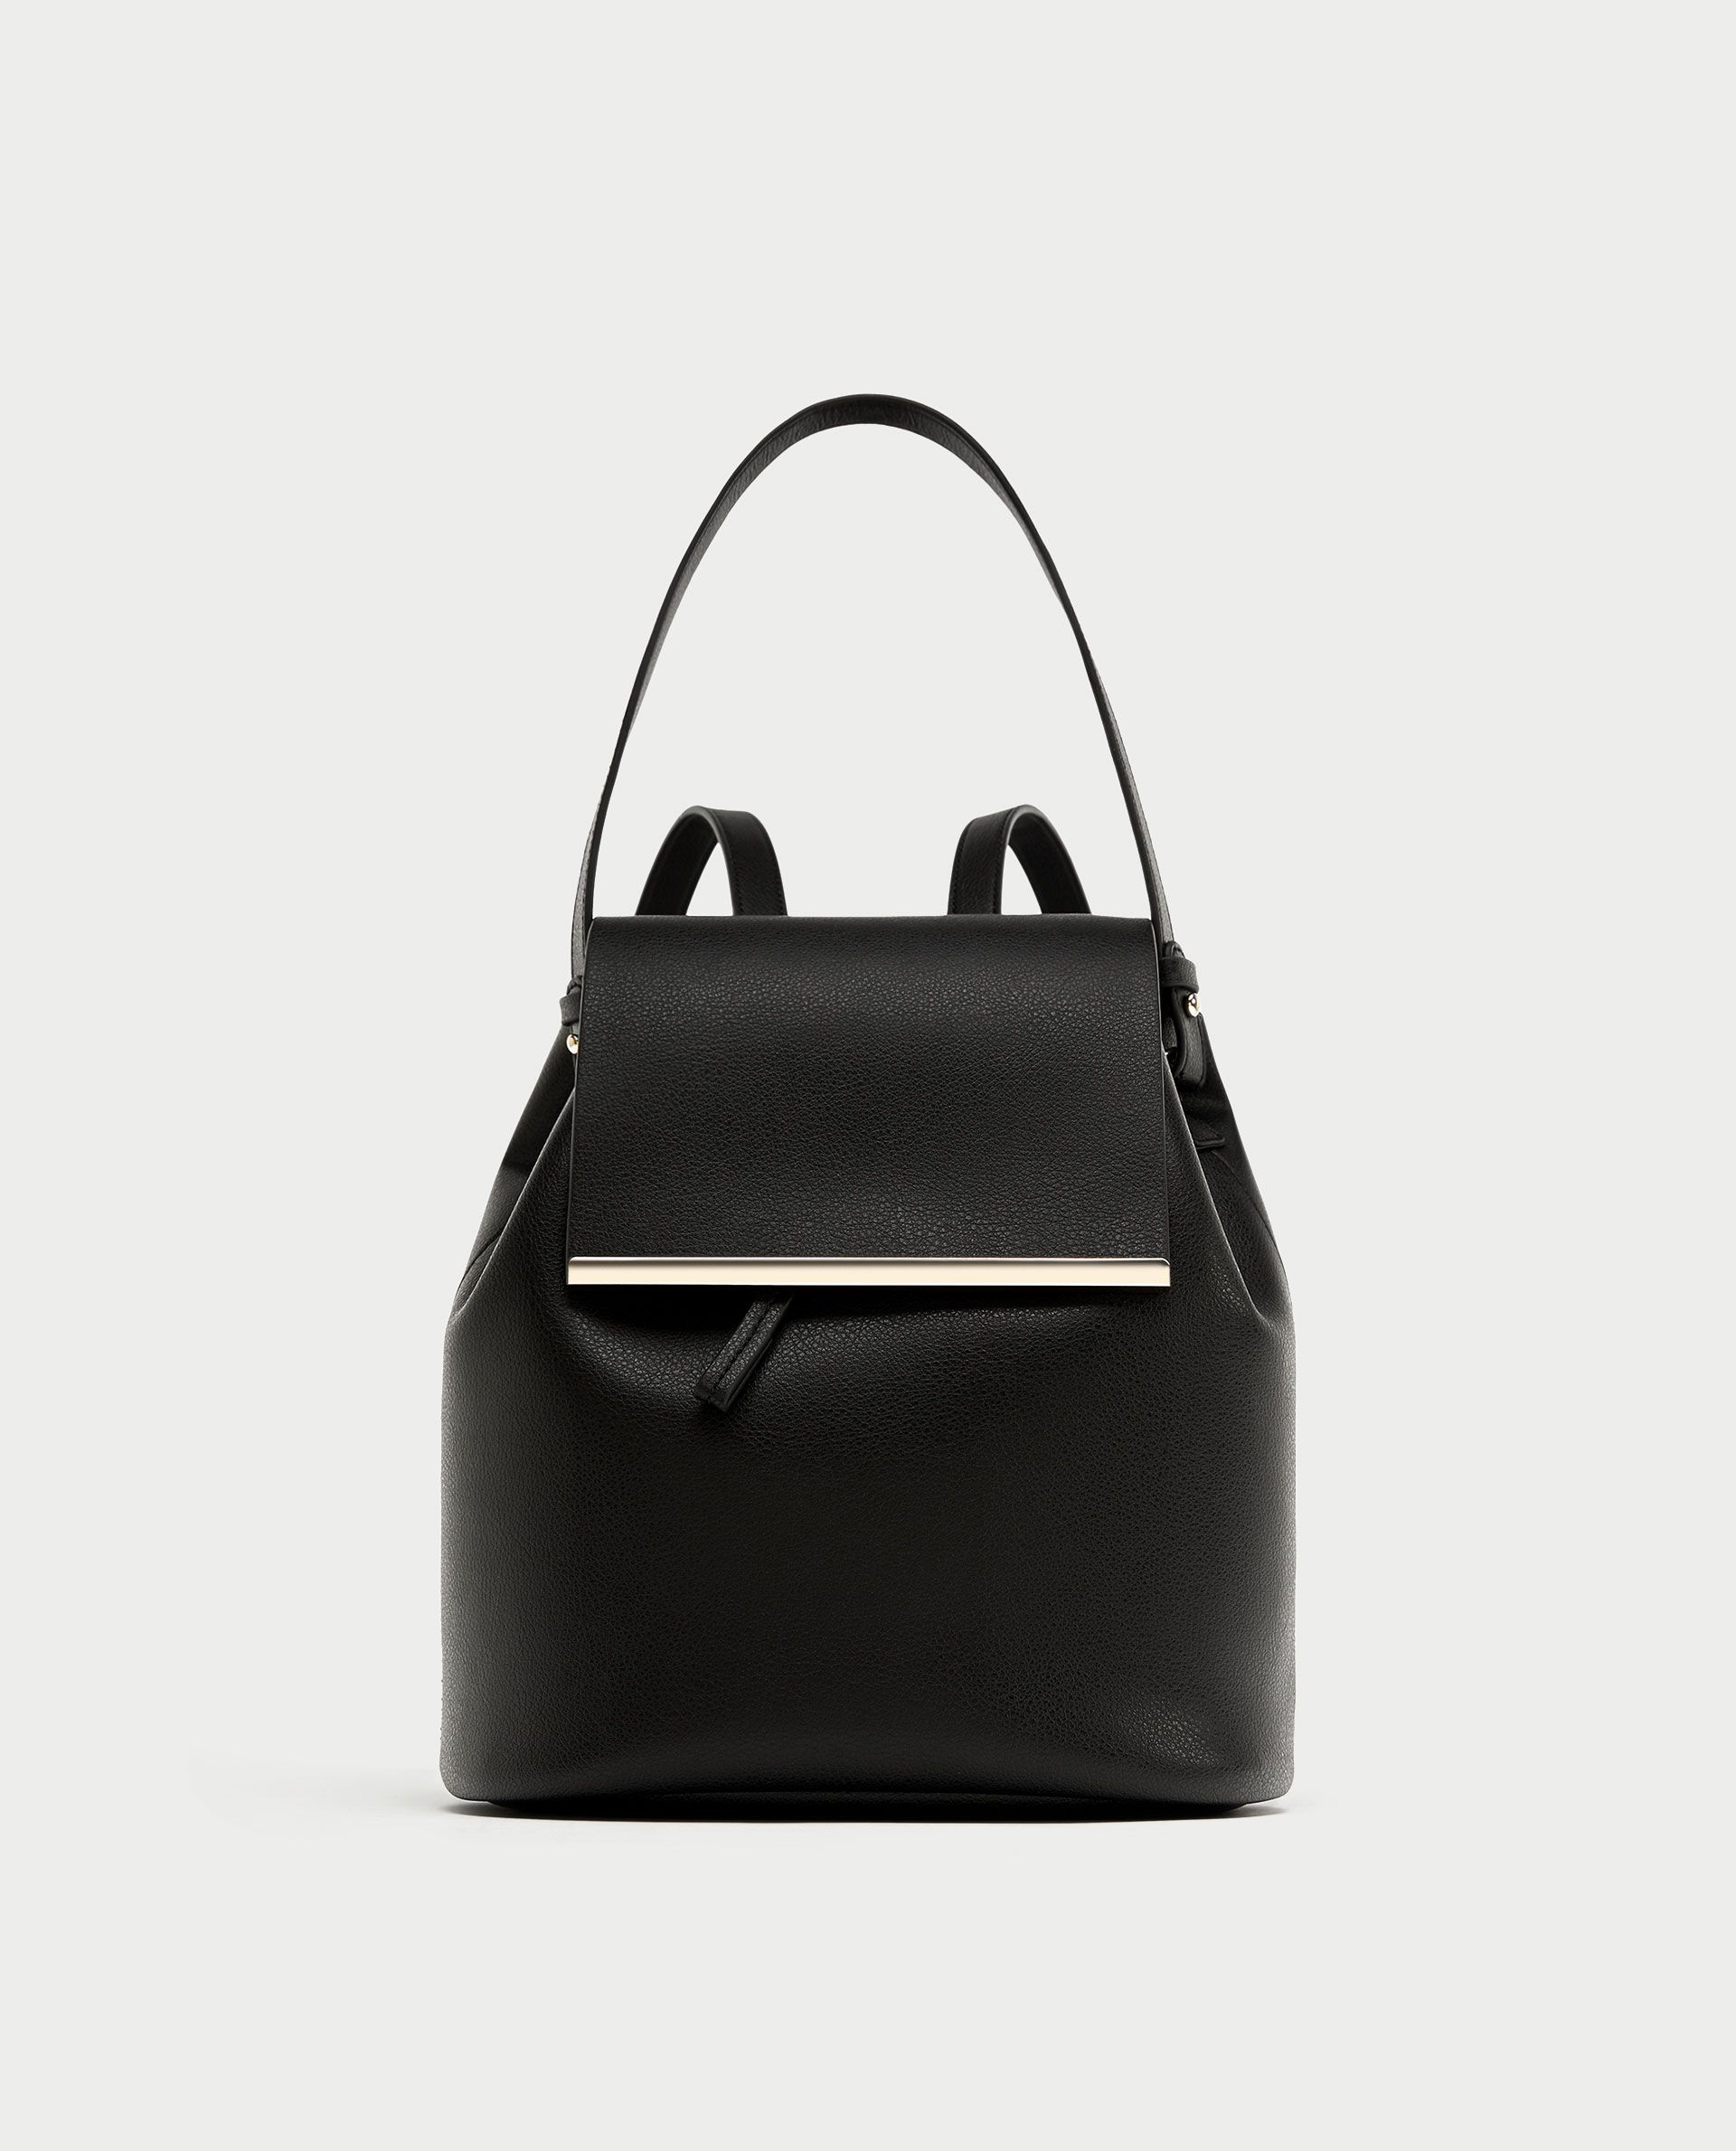 7d92964291c ZARA - WOMAN - BACKPACK WITH HANDLE AND METAL DETAIL Zara Bags, Zara Shoes,